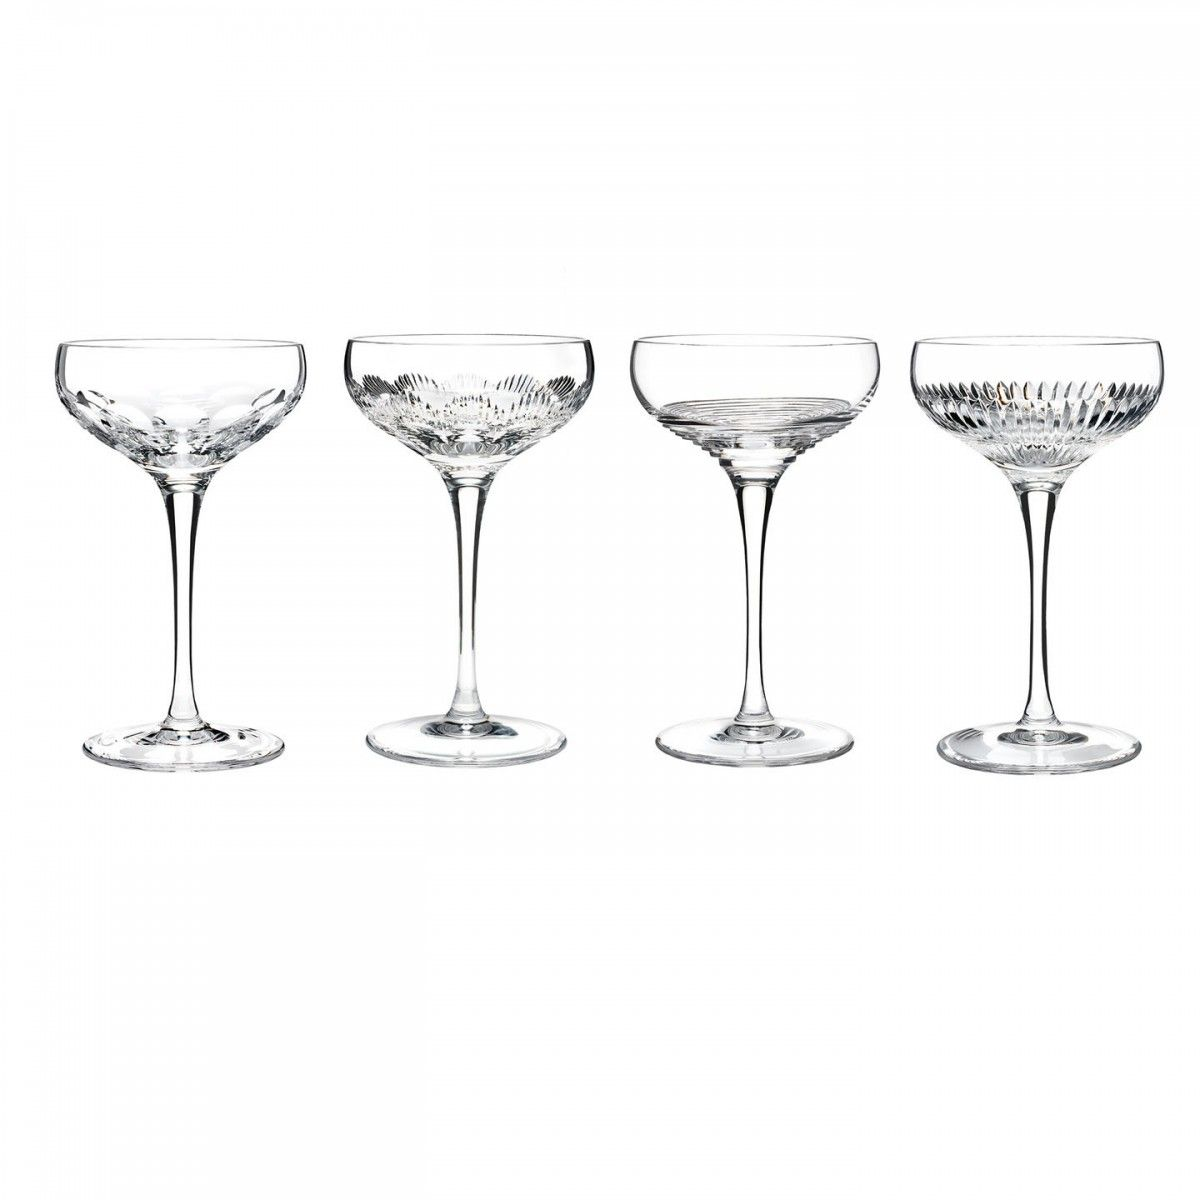 waterford champagne saucers - Google Search   My Life   Pinterest